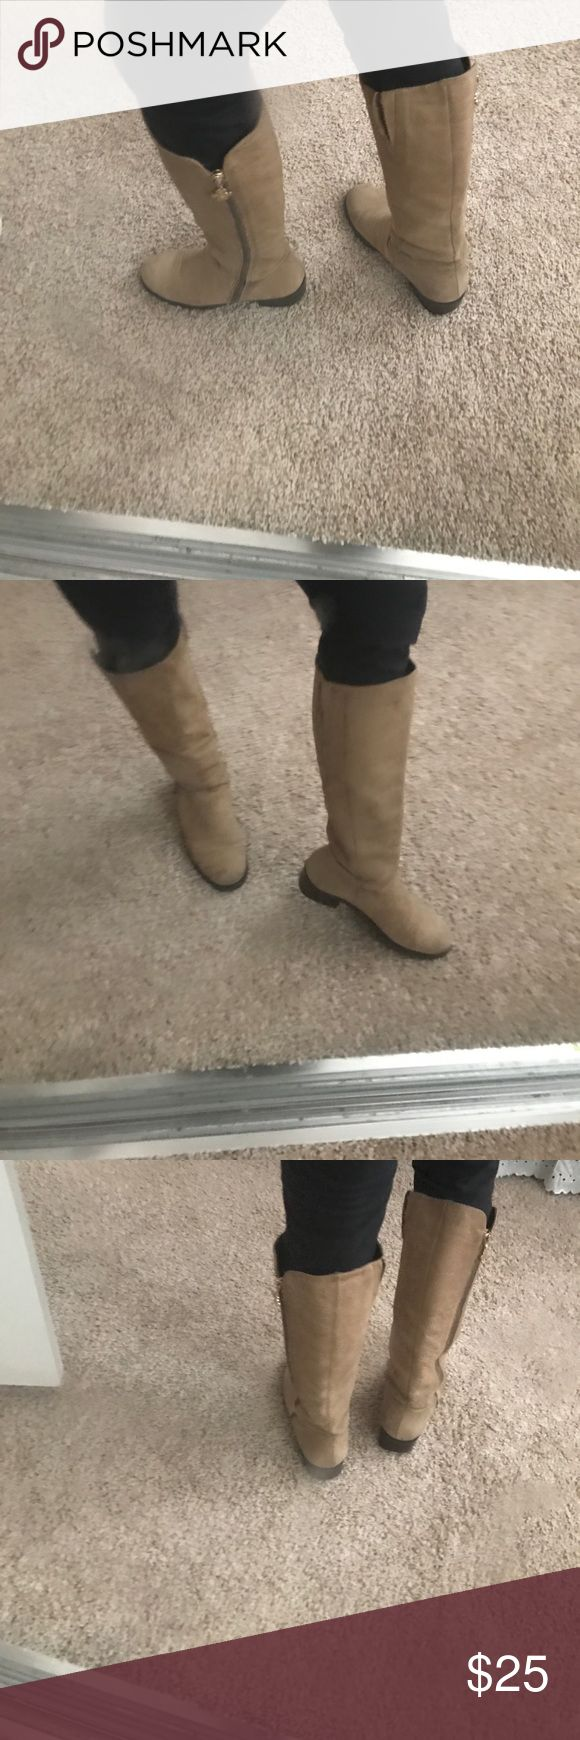 Pre loved Riding boots Diane Von Furstenberg Pre loved Diane Von Furstenberg riding boots these boots have extra room if you have a thick calf also they have that distress camel color no rips just the heel is a little worn still have lots of life to them leather could be cleaned 😀 Made in Brazil please ask for more pics if needed Diane von Furstenberg Shoes